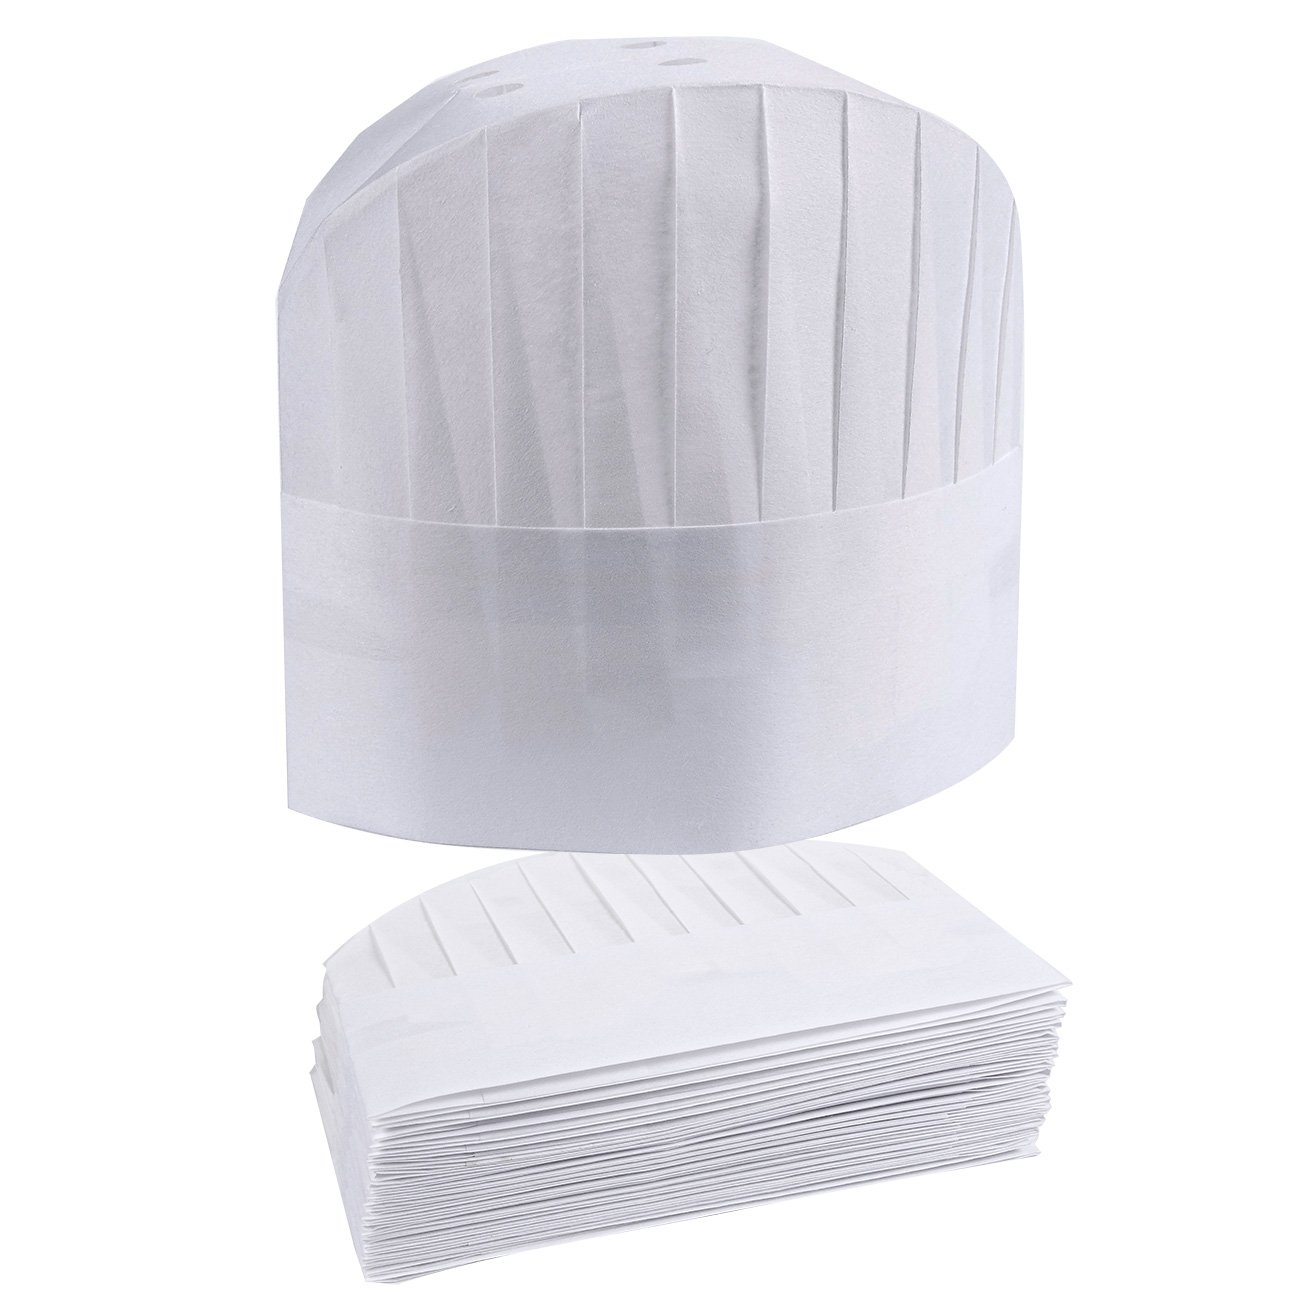 Chef Hats – 24-Pack Disposable White Paper Chef Toques, Chef Supplies, Adjustable Professional Kitchen Chef Caps for Baking, Culinary Hygiene, Cooking Safety, 23-24.4 Inches in Circumference